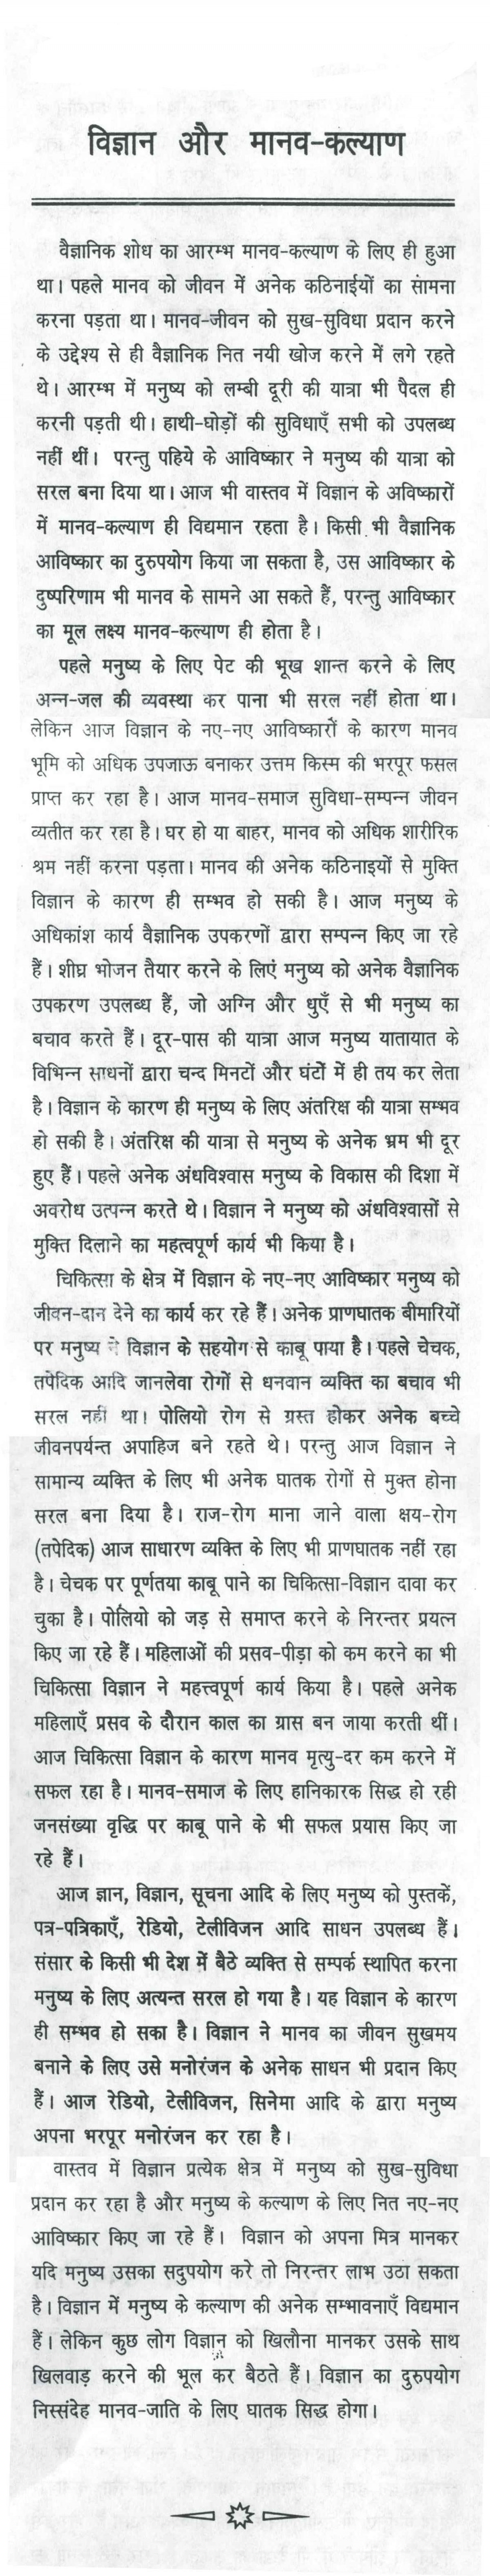 019 Advantage And Disadvantage Of Science Essay Example Benefit Education On Importance In Hindi Advantages Disadvantages Higher 10061 Benefits Shocking With Quotes Language 960